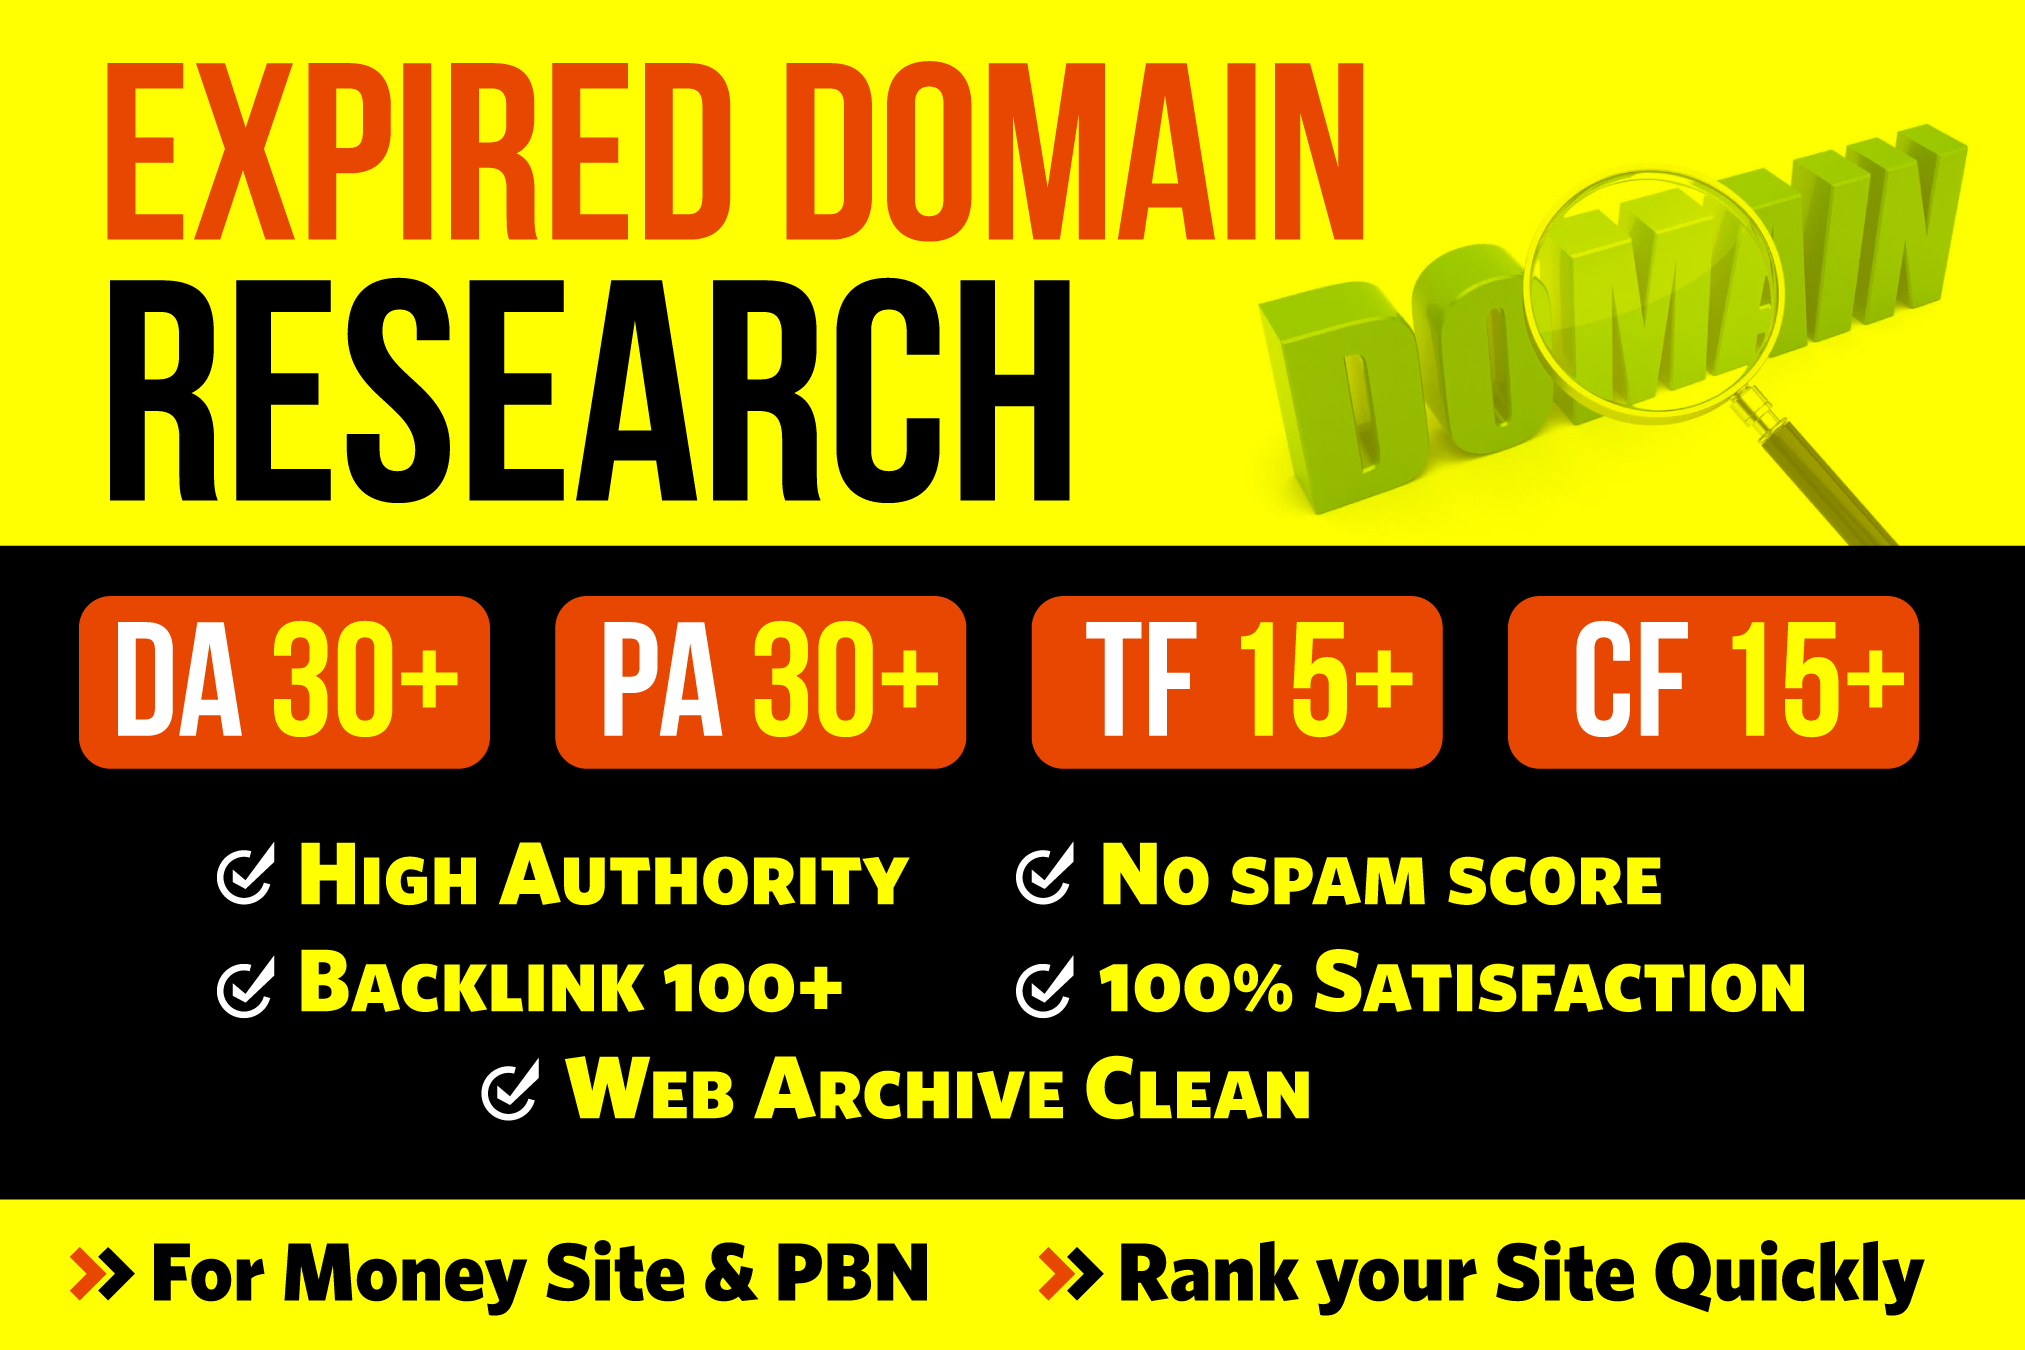 I will research 3 high DA PA expired domain